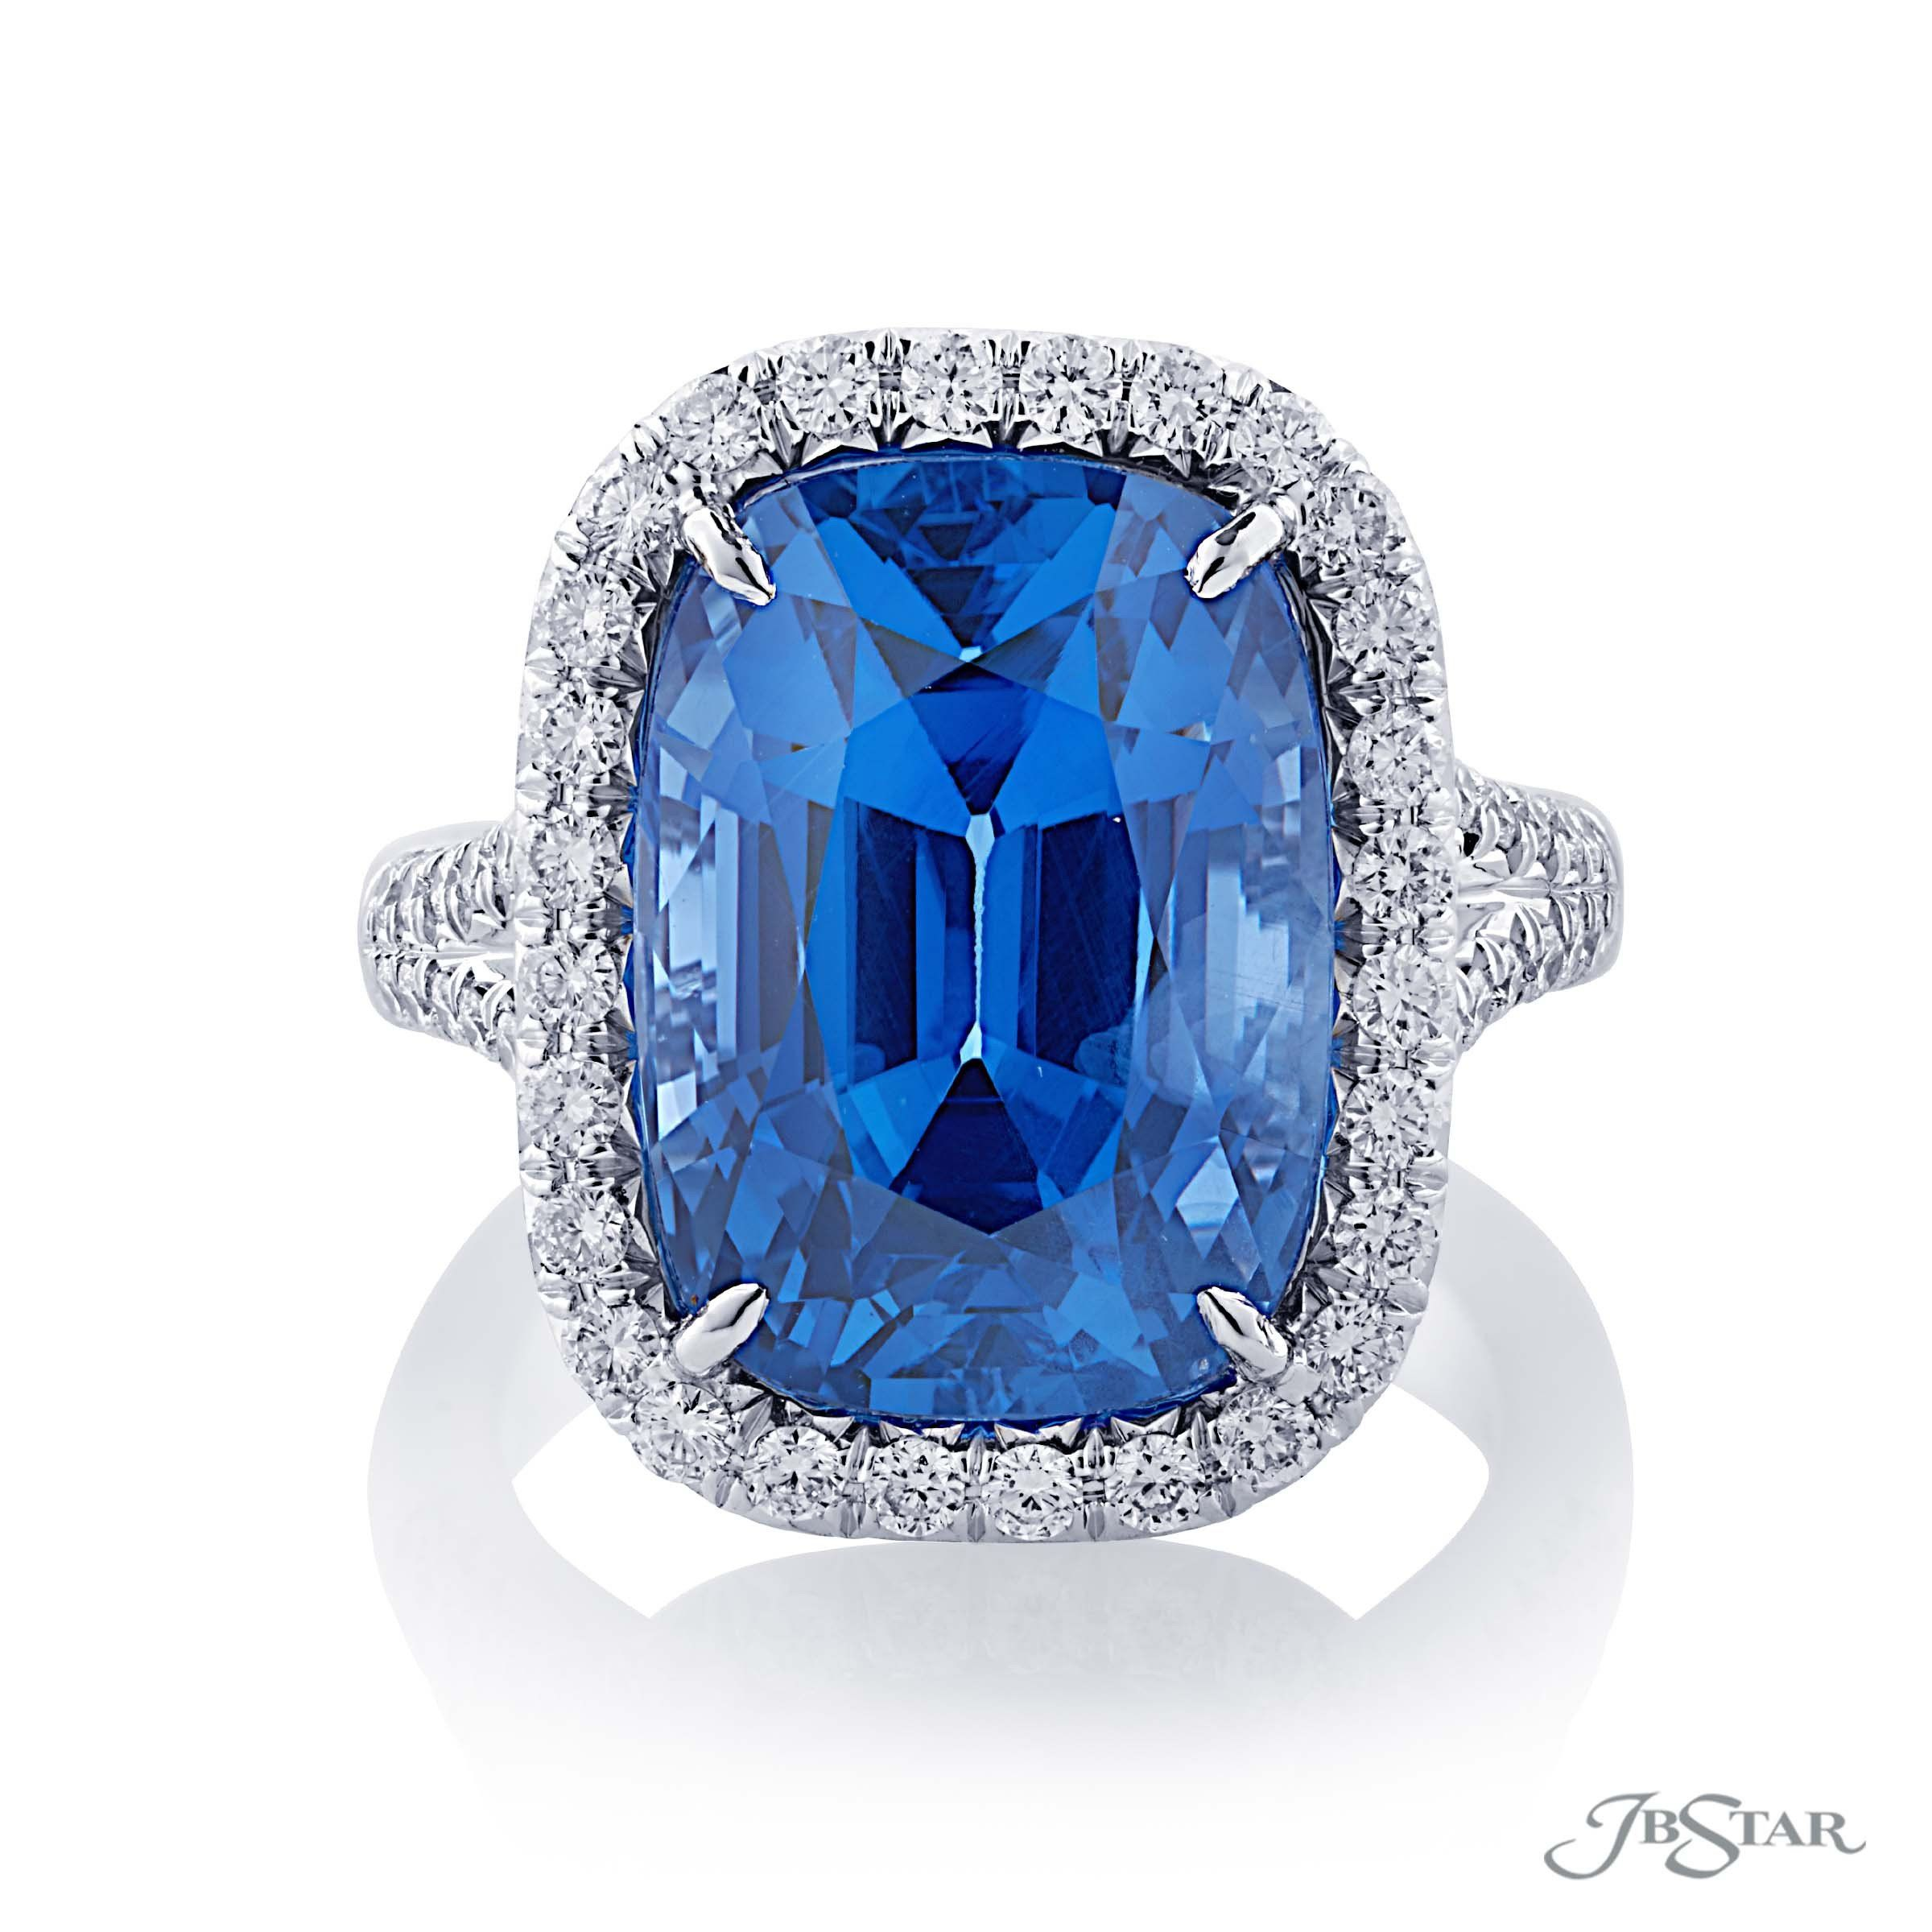 1b465770145 Spectacular sapphire and diamond ring featuring a magnificent 16.69 ct. GIA  certified Sri Lankan cushion